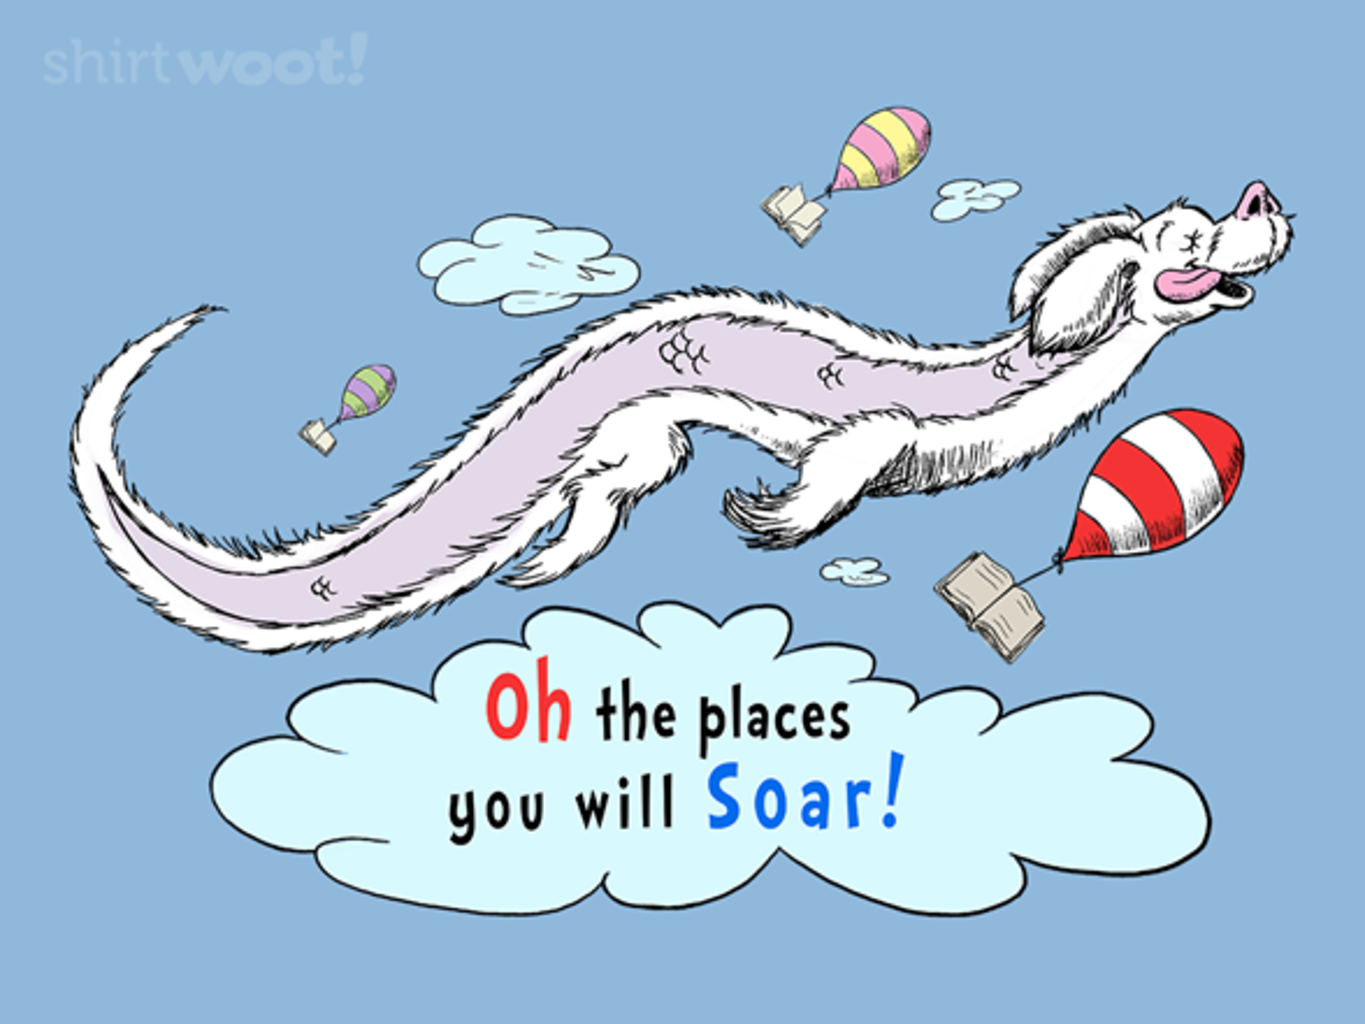 Woot!: The Places You Will Go With Falkor